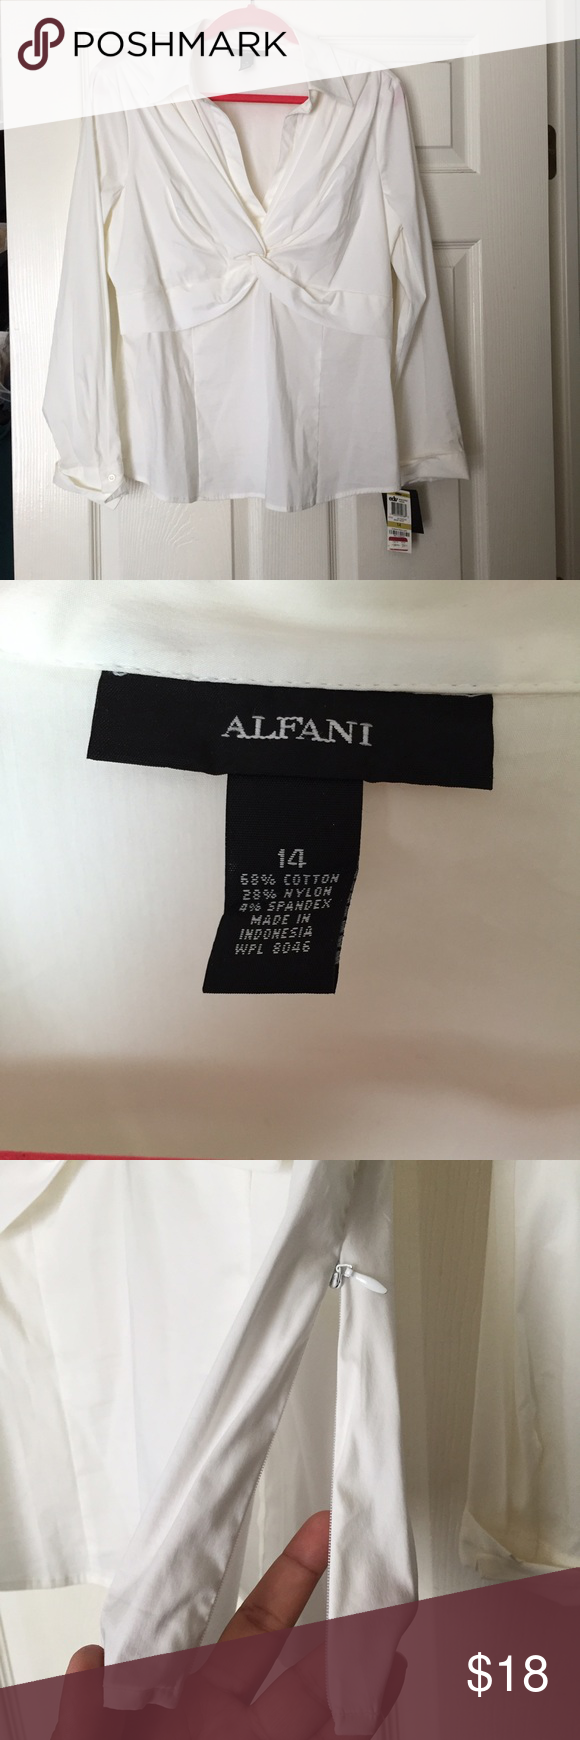 NWT Alfani blouse 14 White blouse with side zipper and cross detail on cleavage. New, no flaws. Alfani Tops